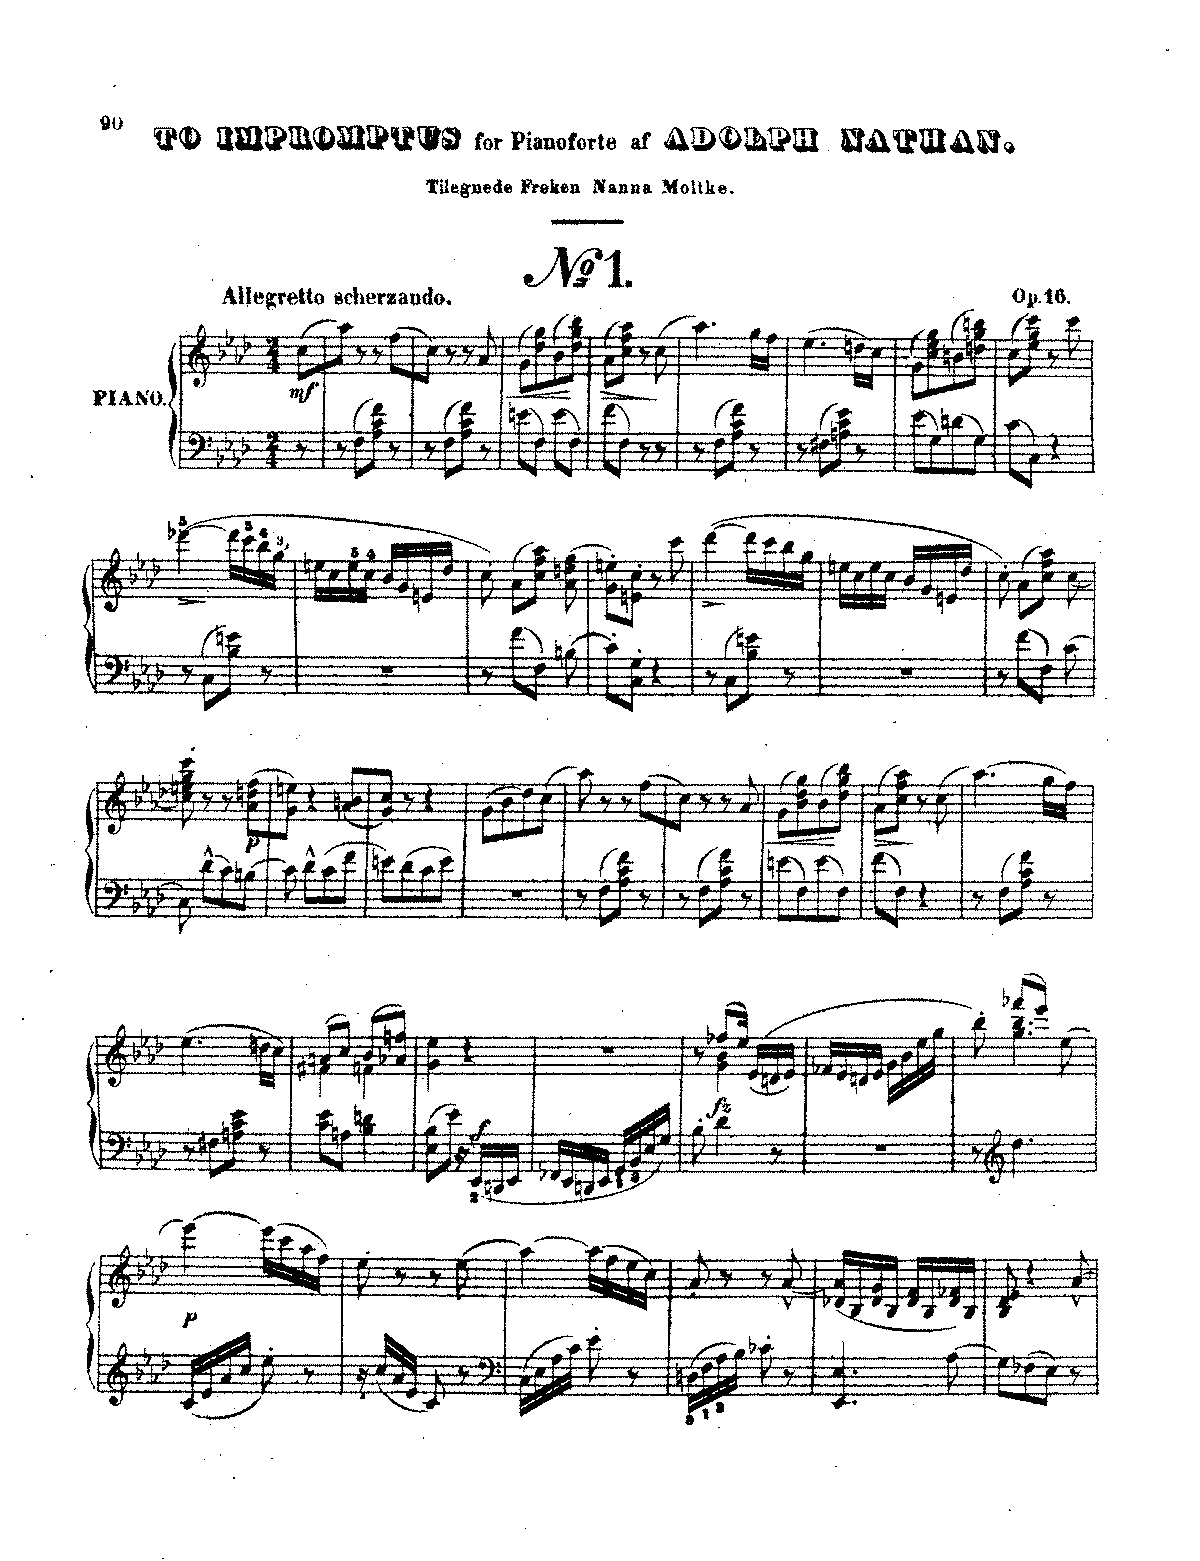 PMLP173240-nathan adolph - to impromptus for pianoforte.pdf